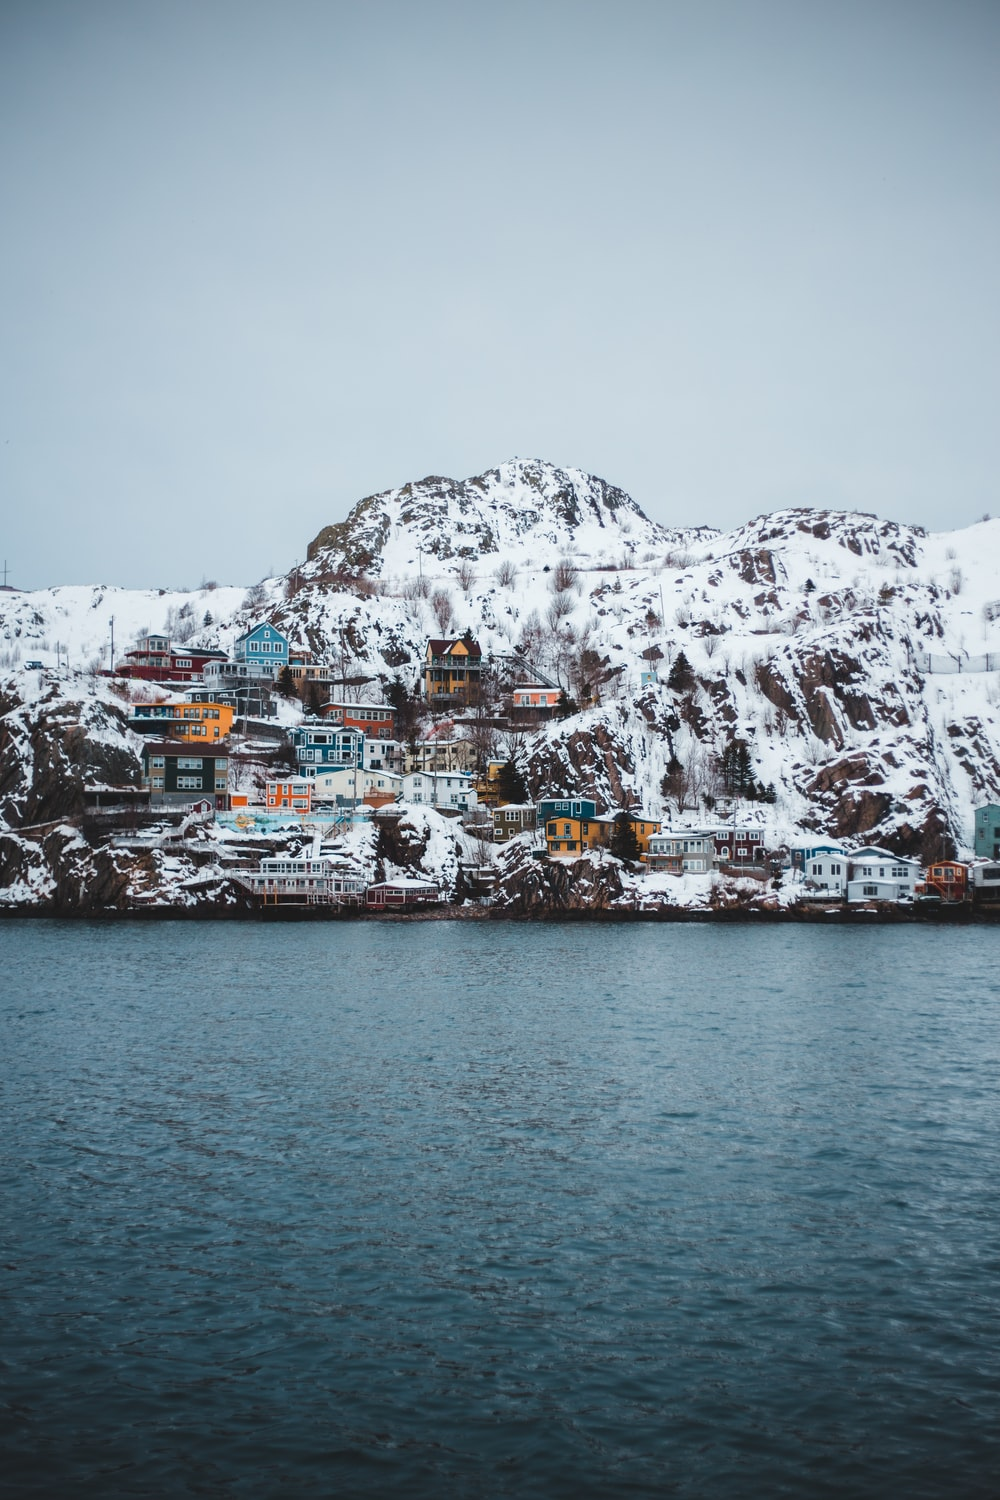 houses on cliff viewing body of water during daytime